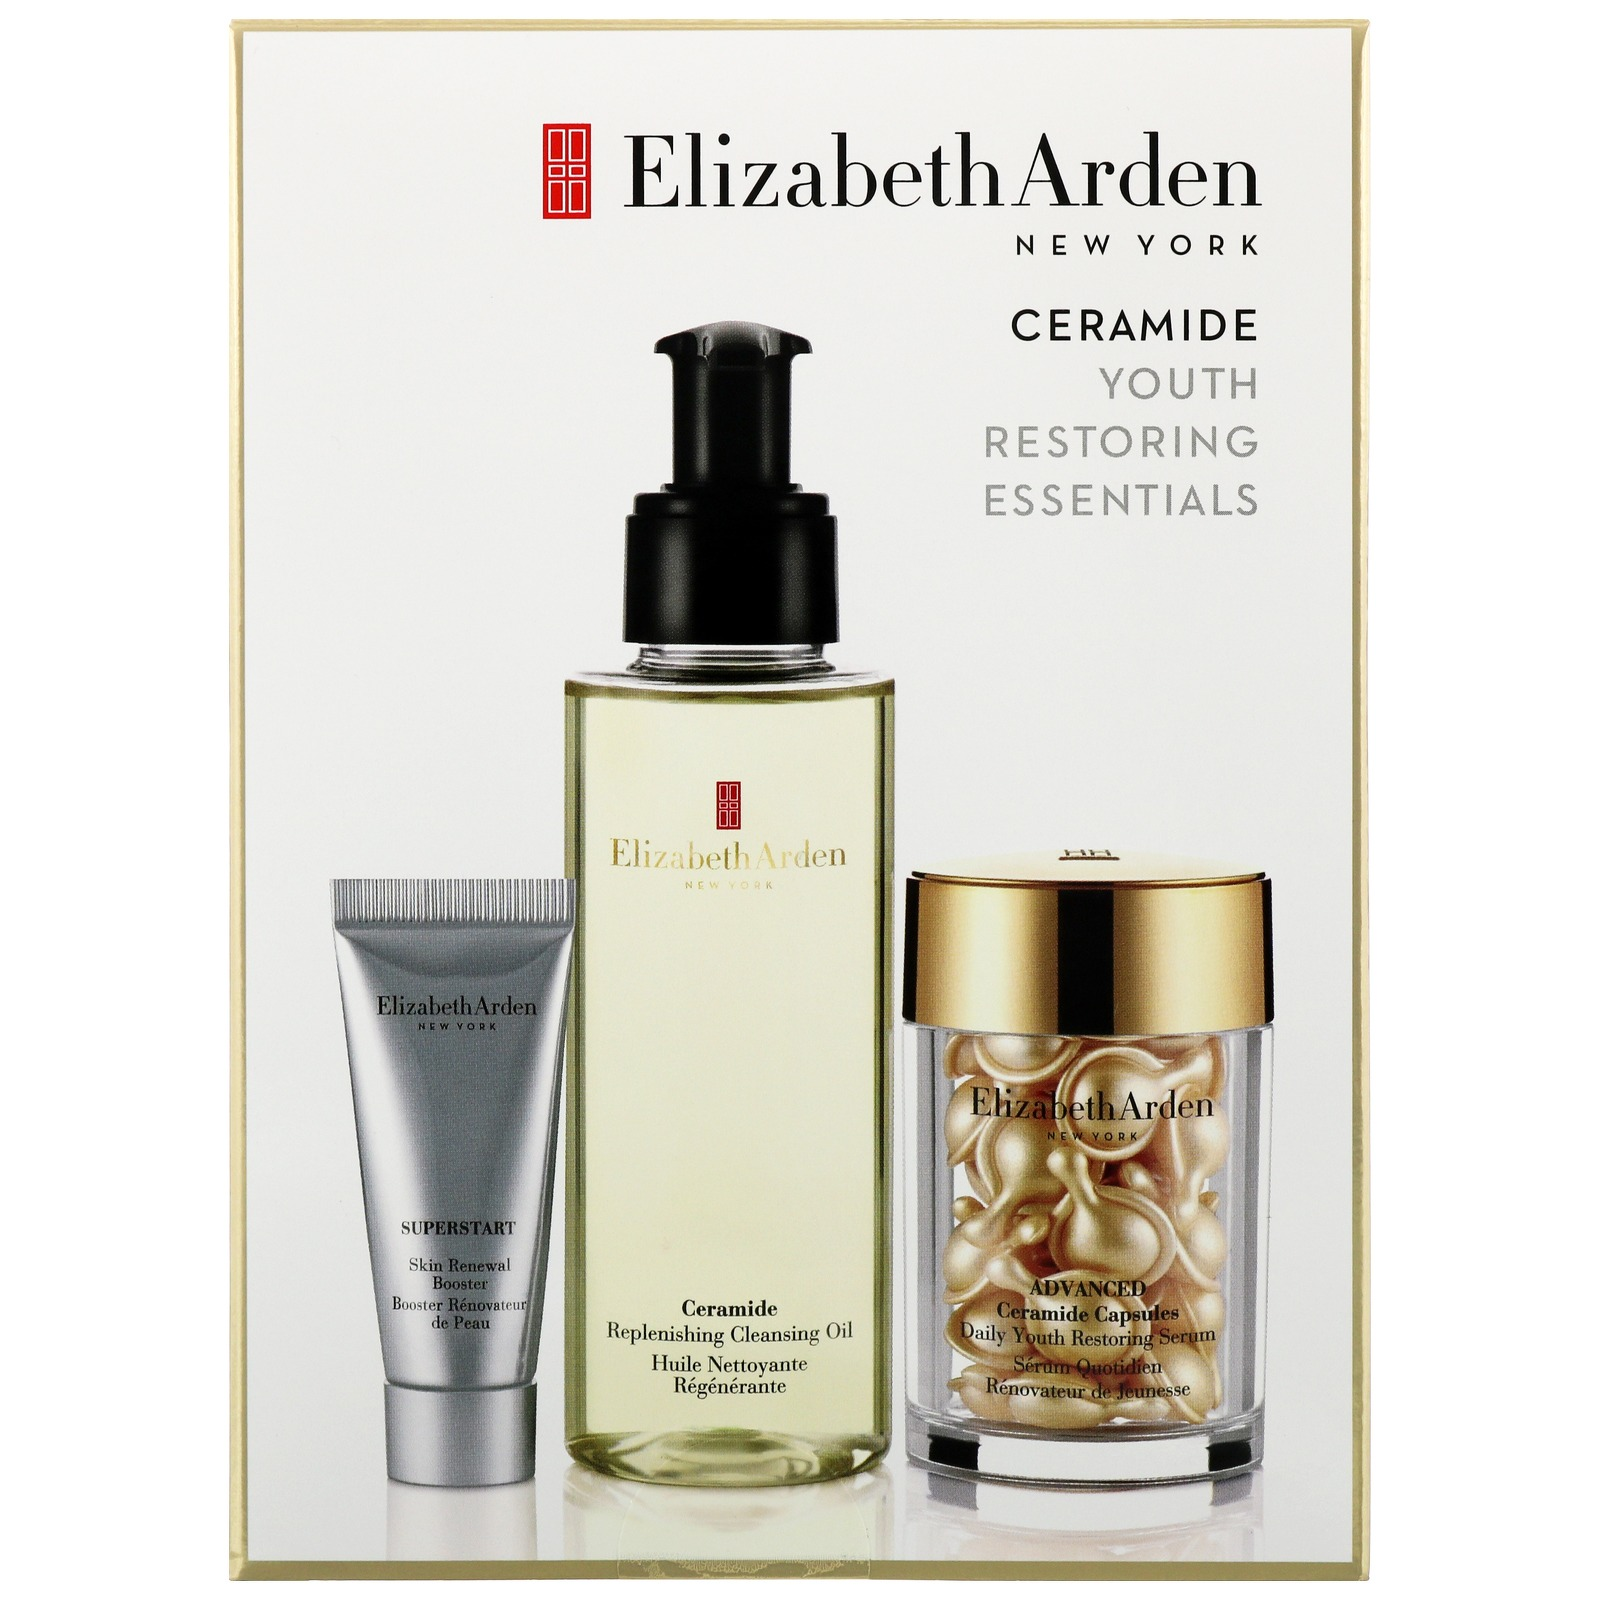 Elizabeth Arden Gifts & Sets Ceramide Youth Restoring Essentials